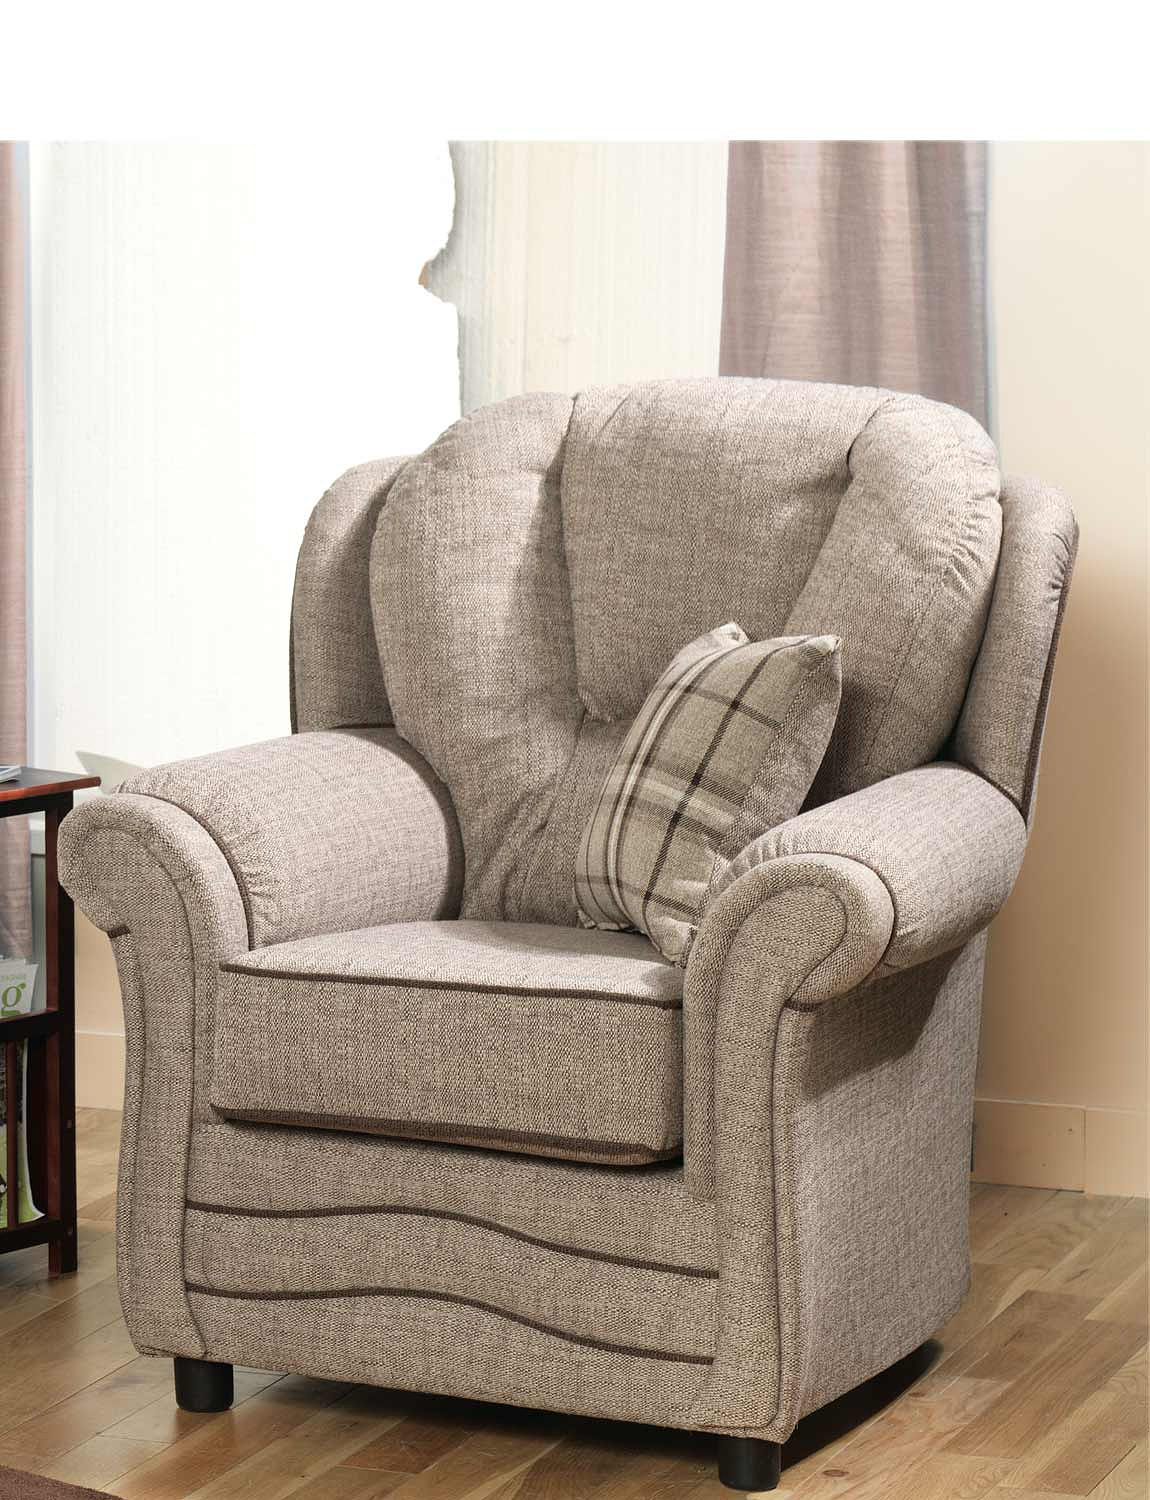 Chadderton Furniture - Chair